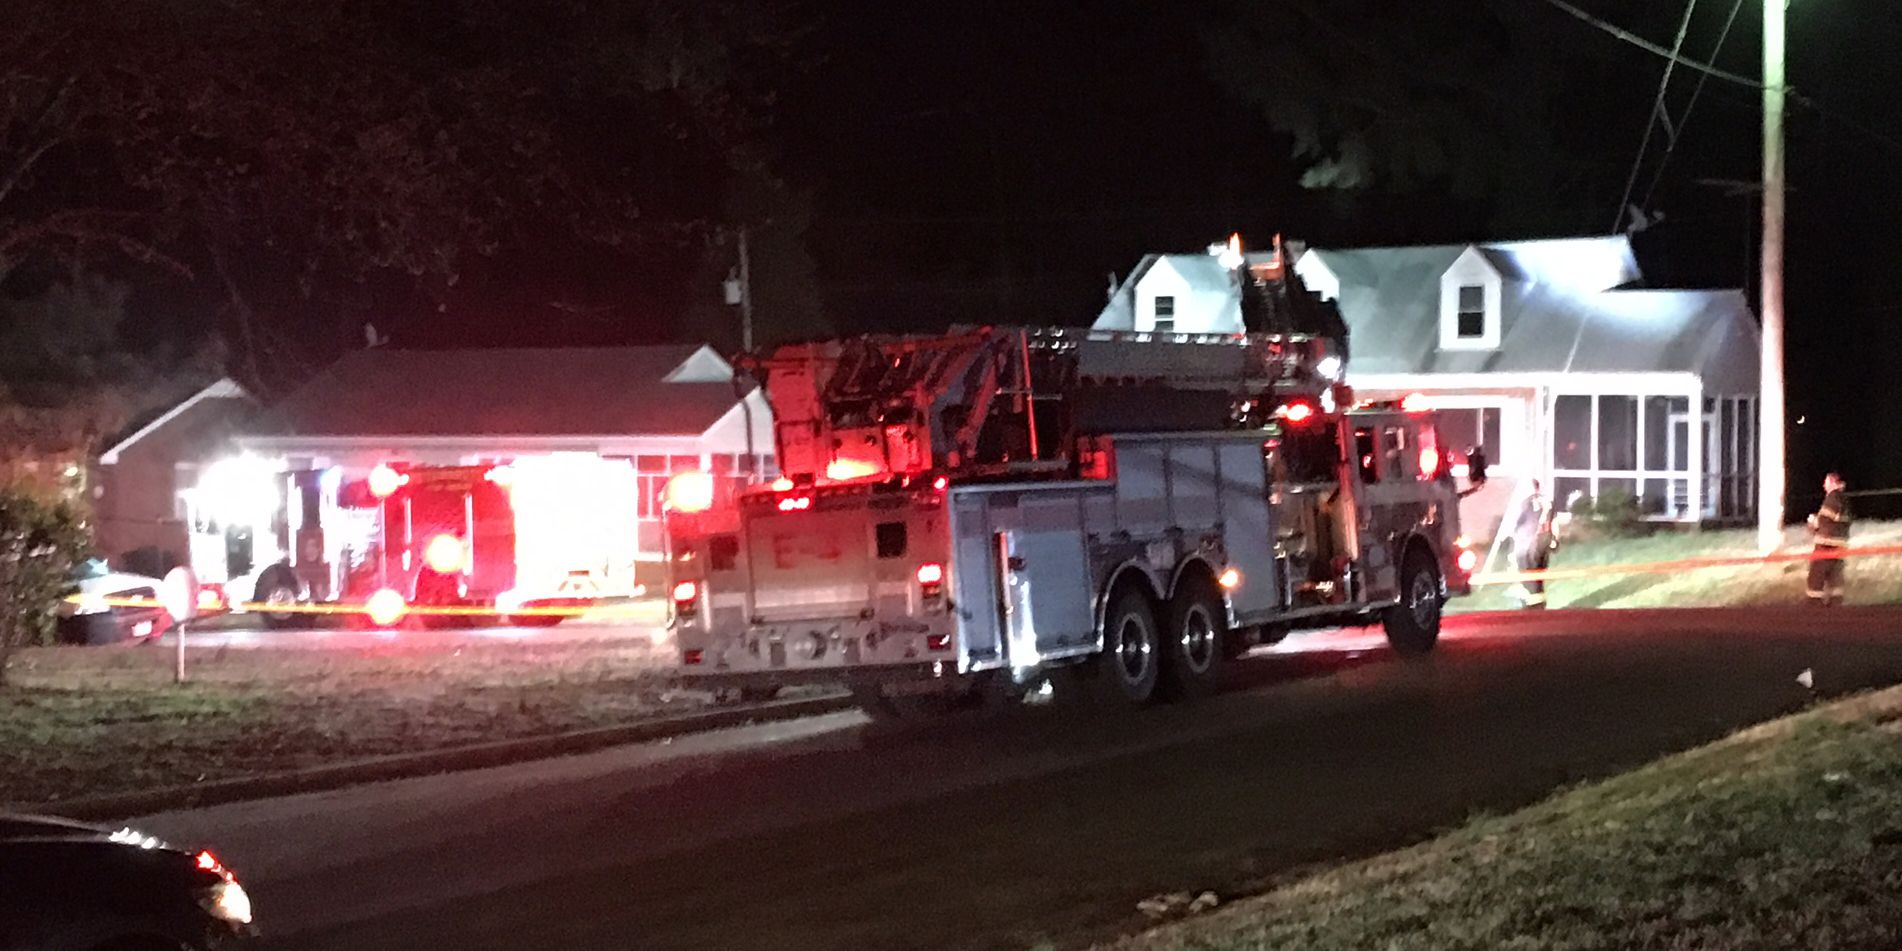 Man dies after being severely burned in Petersburg house fire; 1 victim still hospitalized